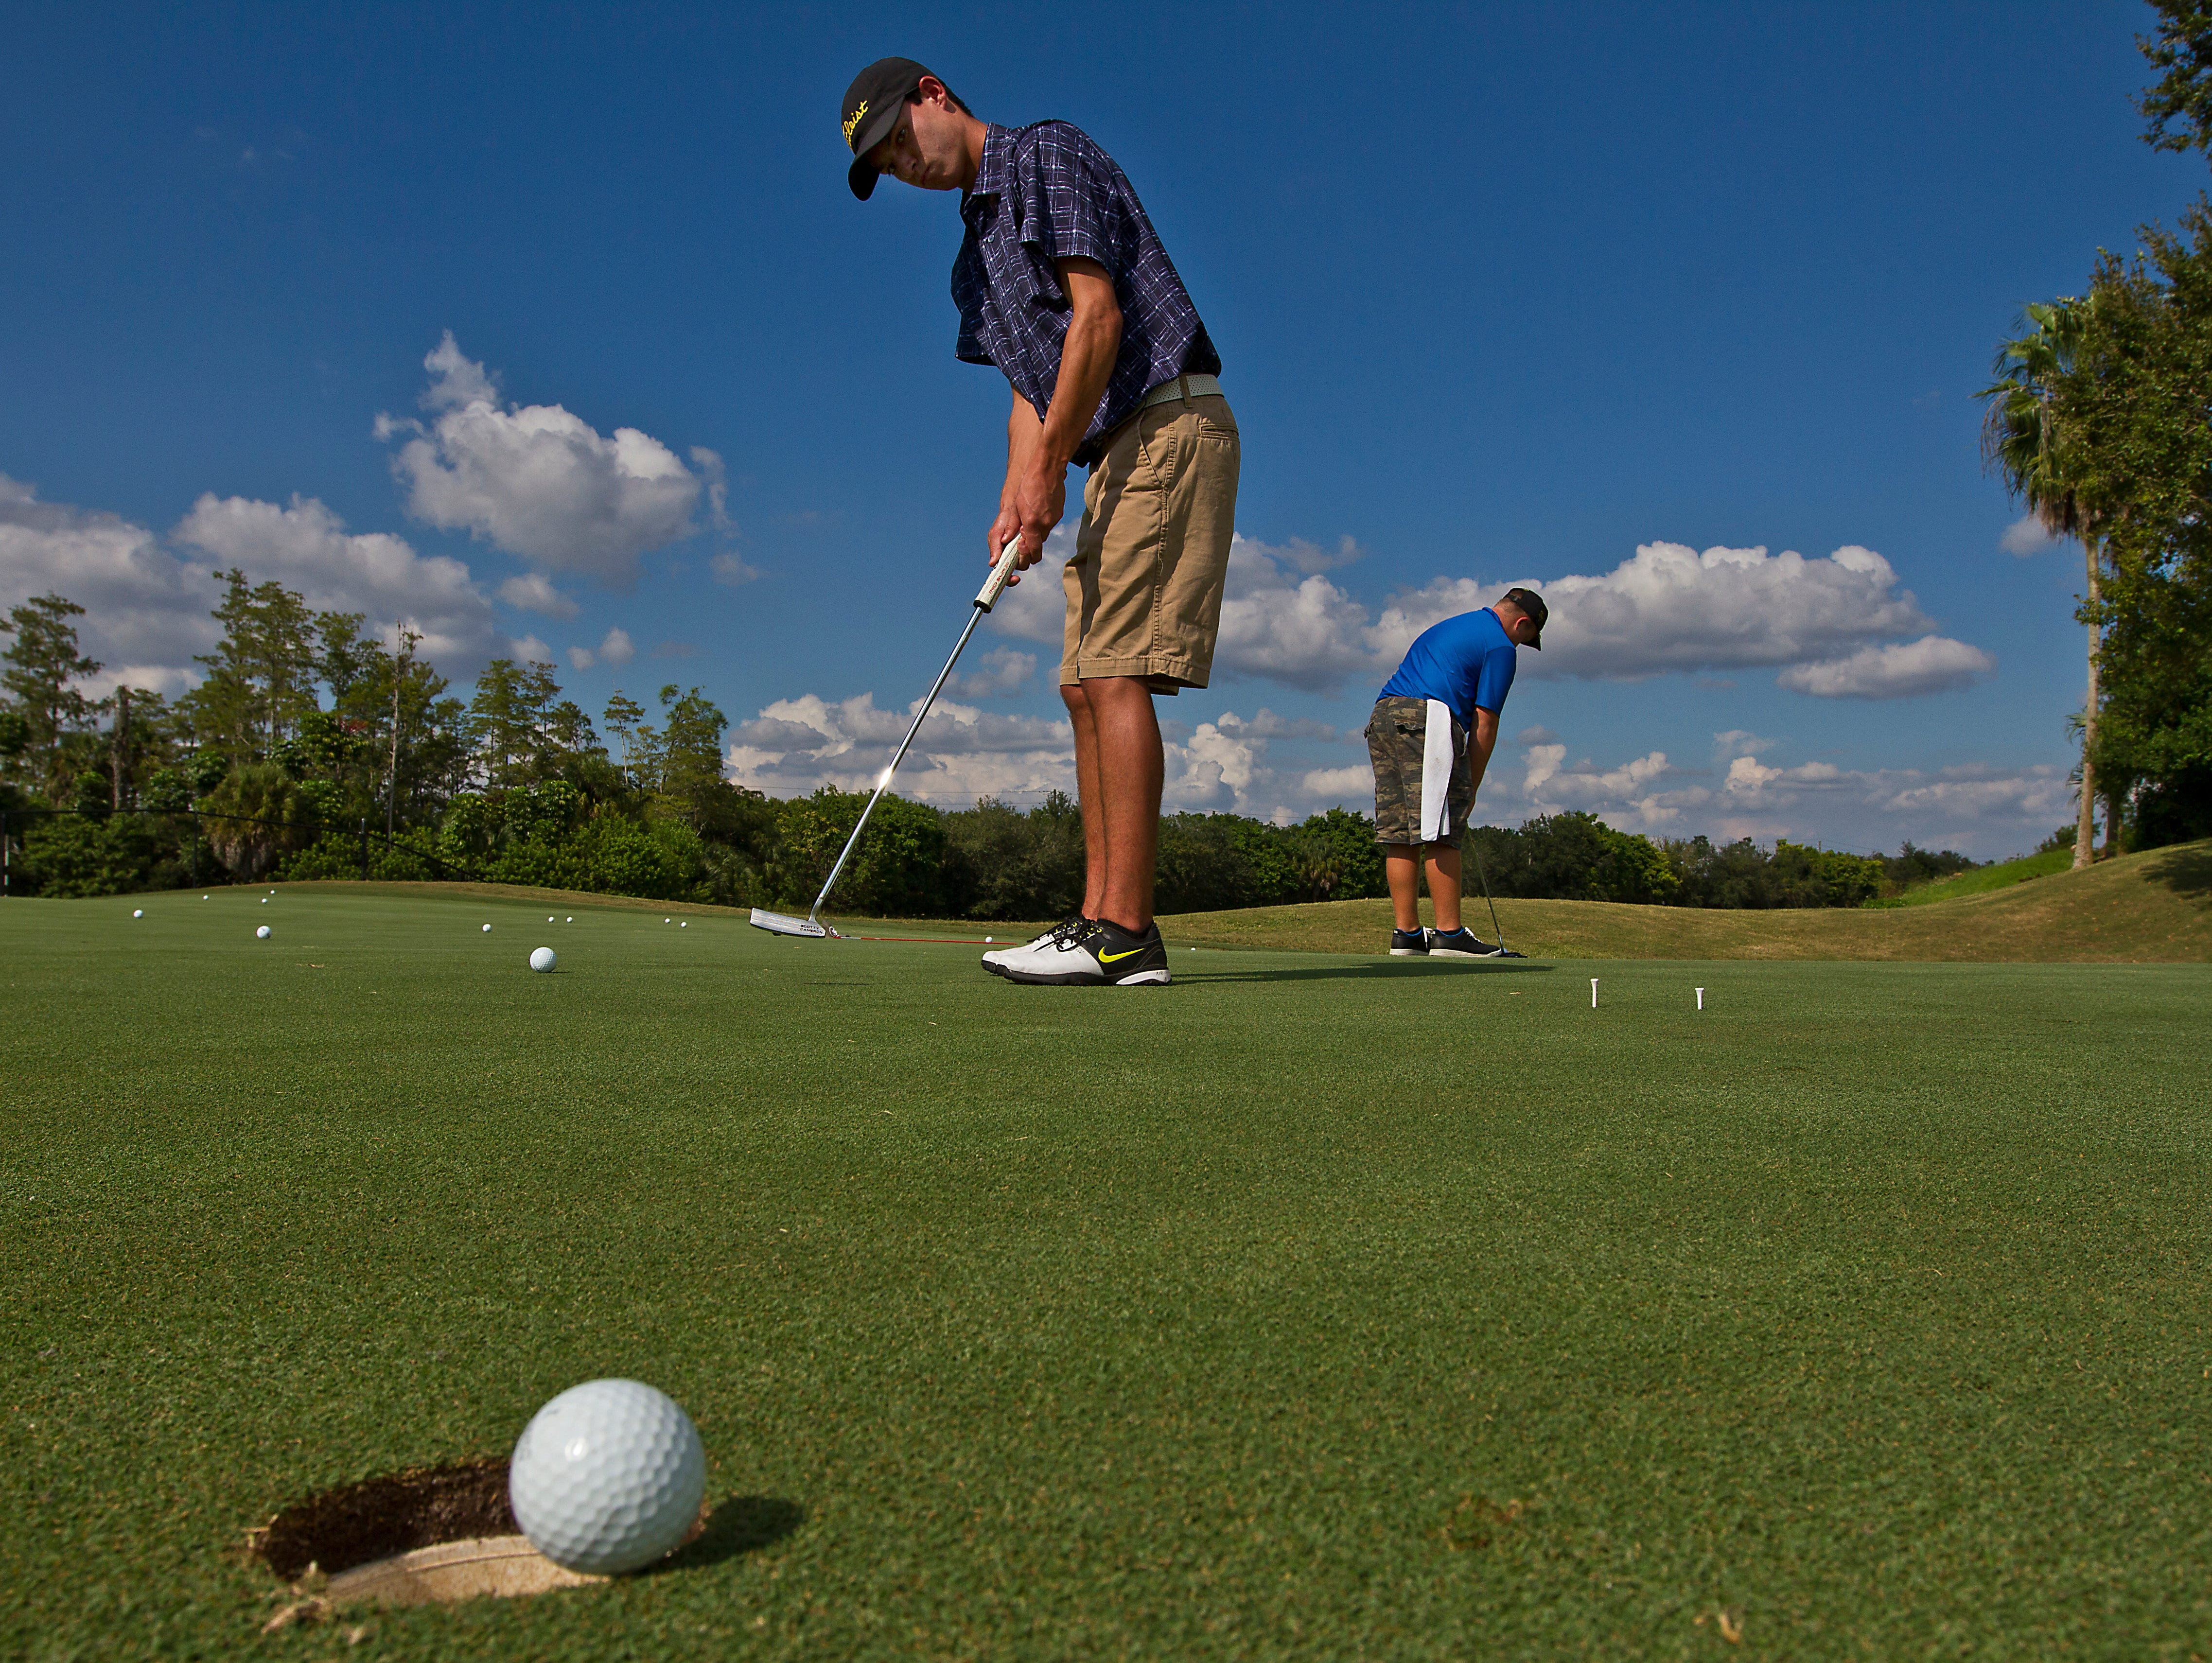 Bishop Verot High School freshman Blake Wheeler, 15, of Fort Myers, works on his putting game Thursday afternoon at Stoneybrook Golf Club during a team practice.